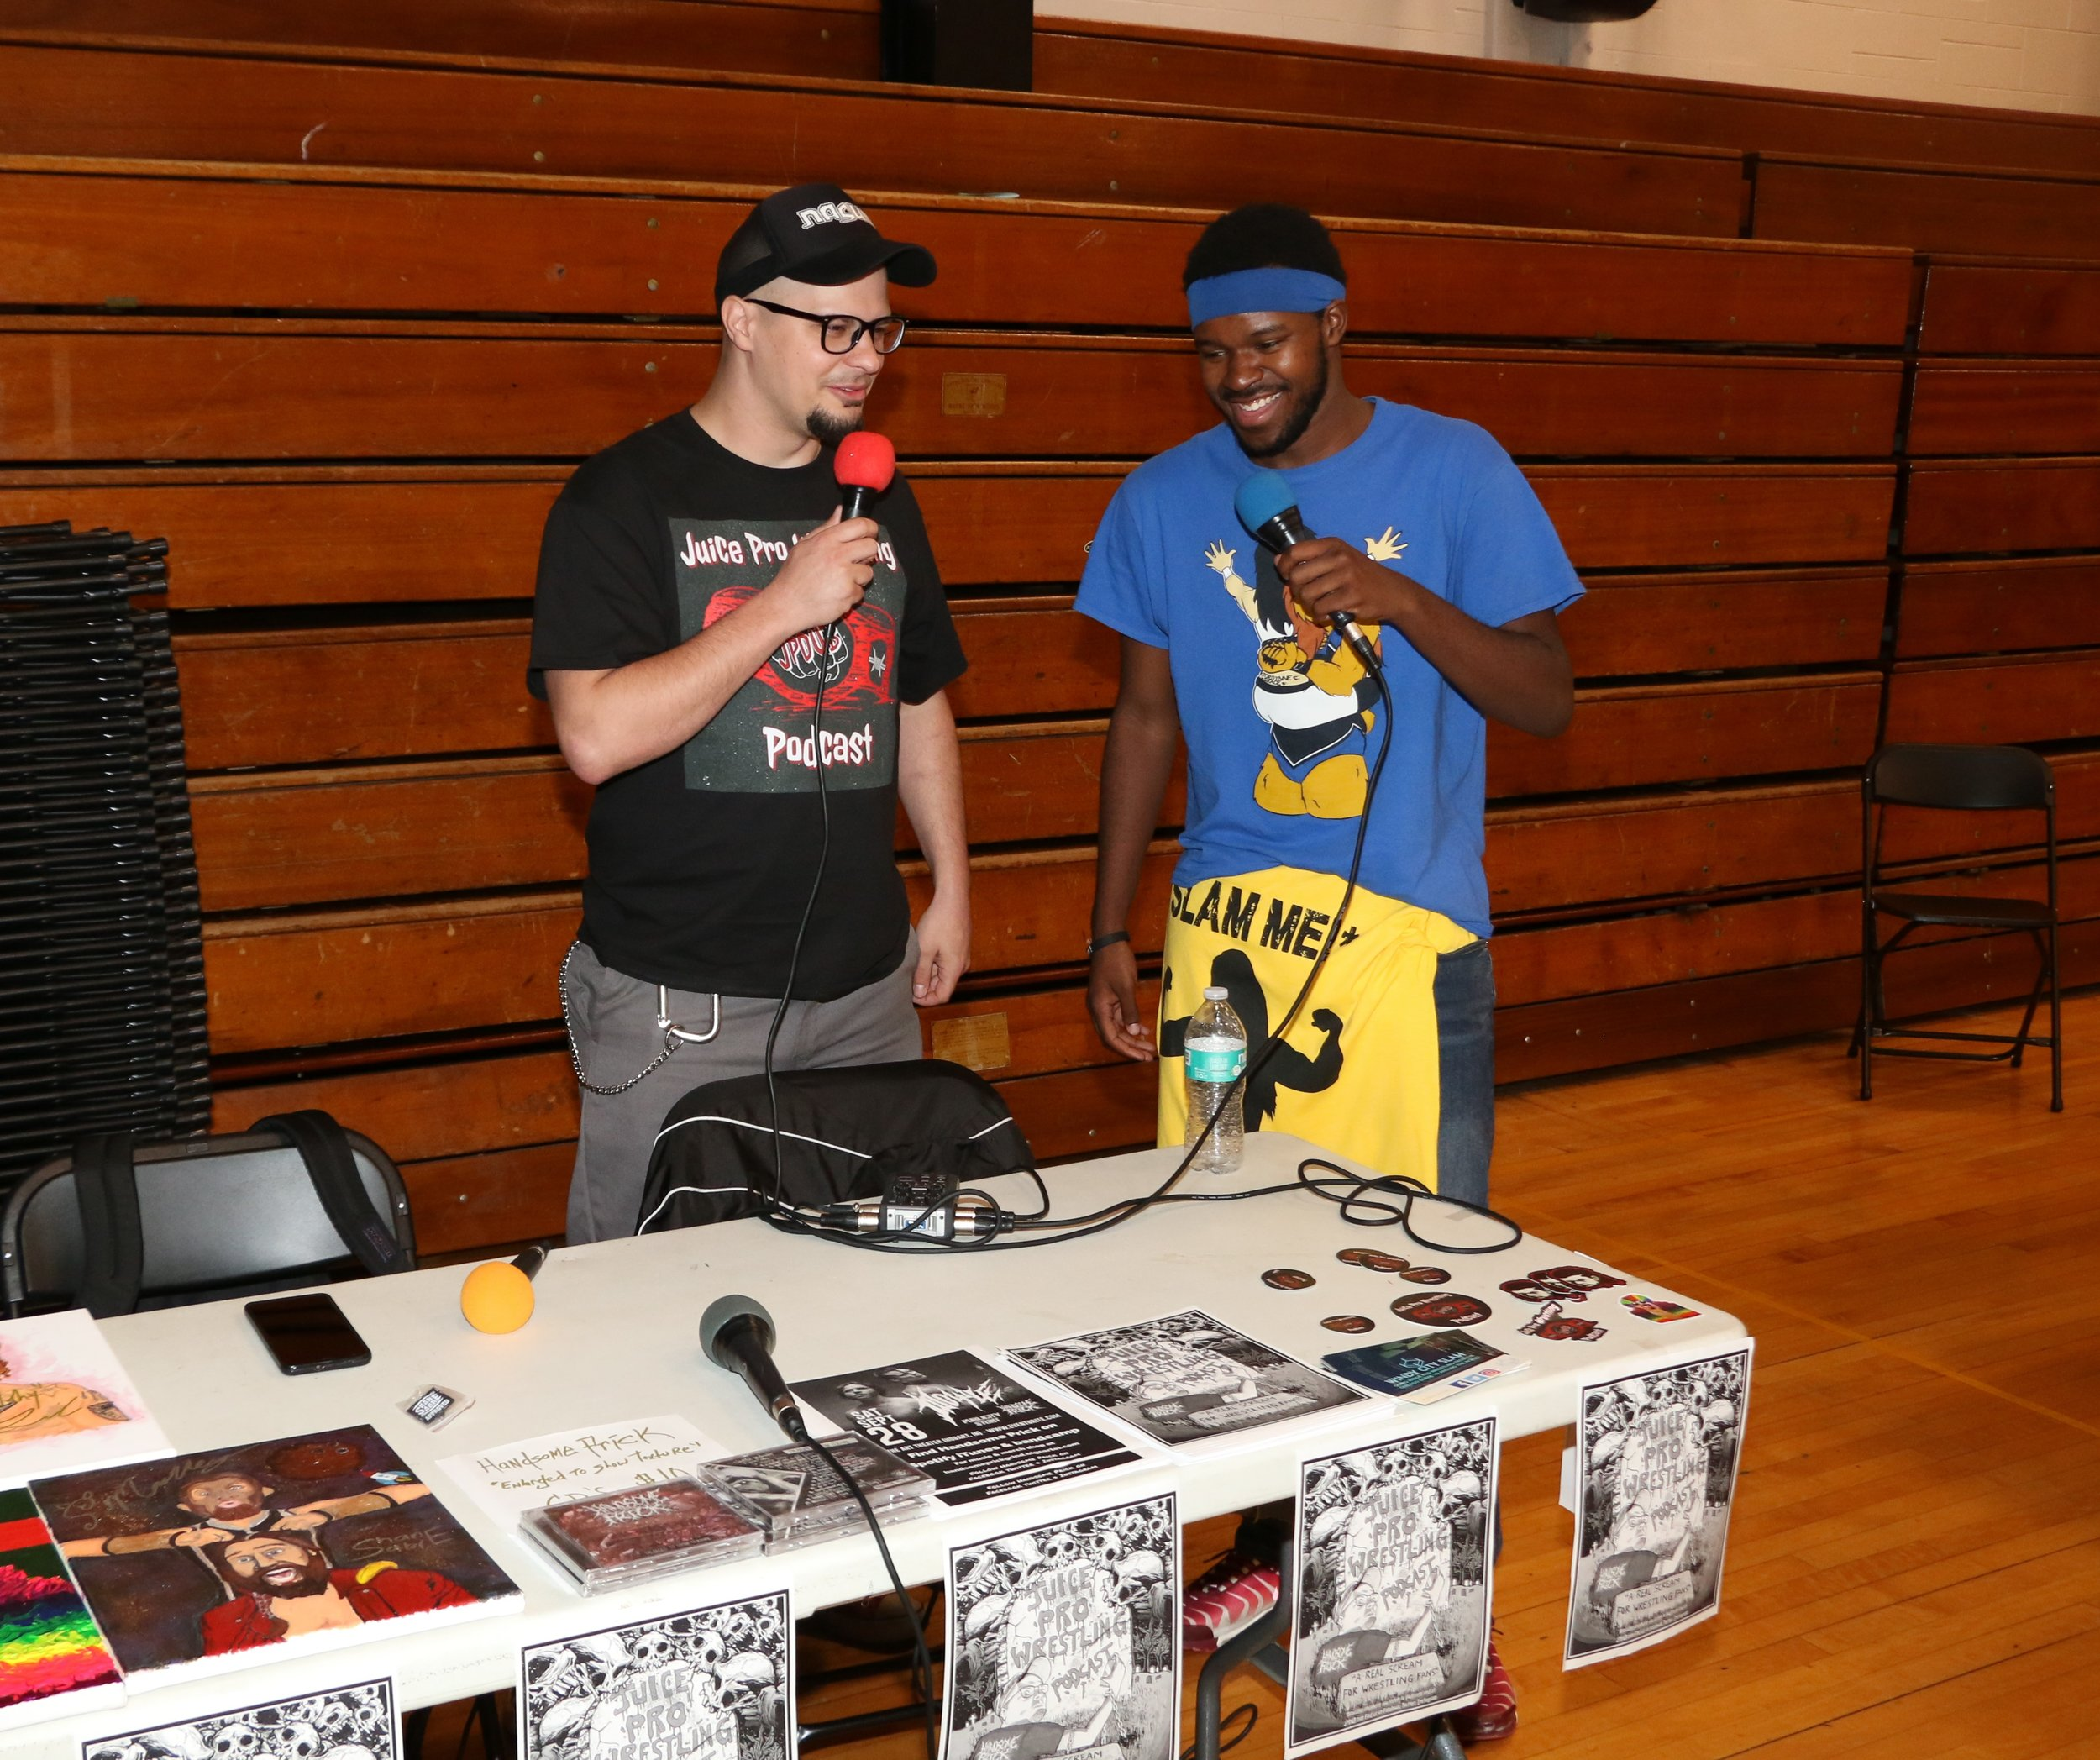 Juice talks to a fan at the Juice Pro Wrestling Podcast table during intermission.